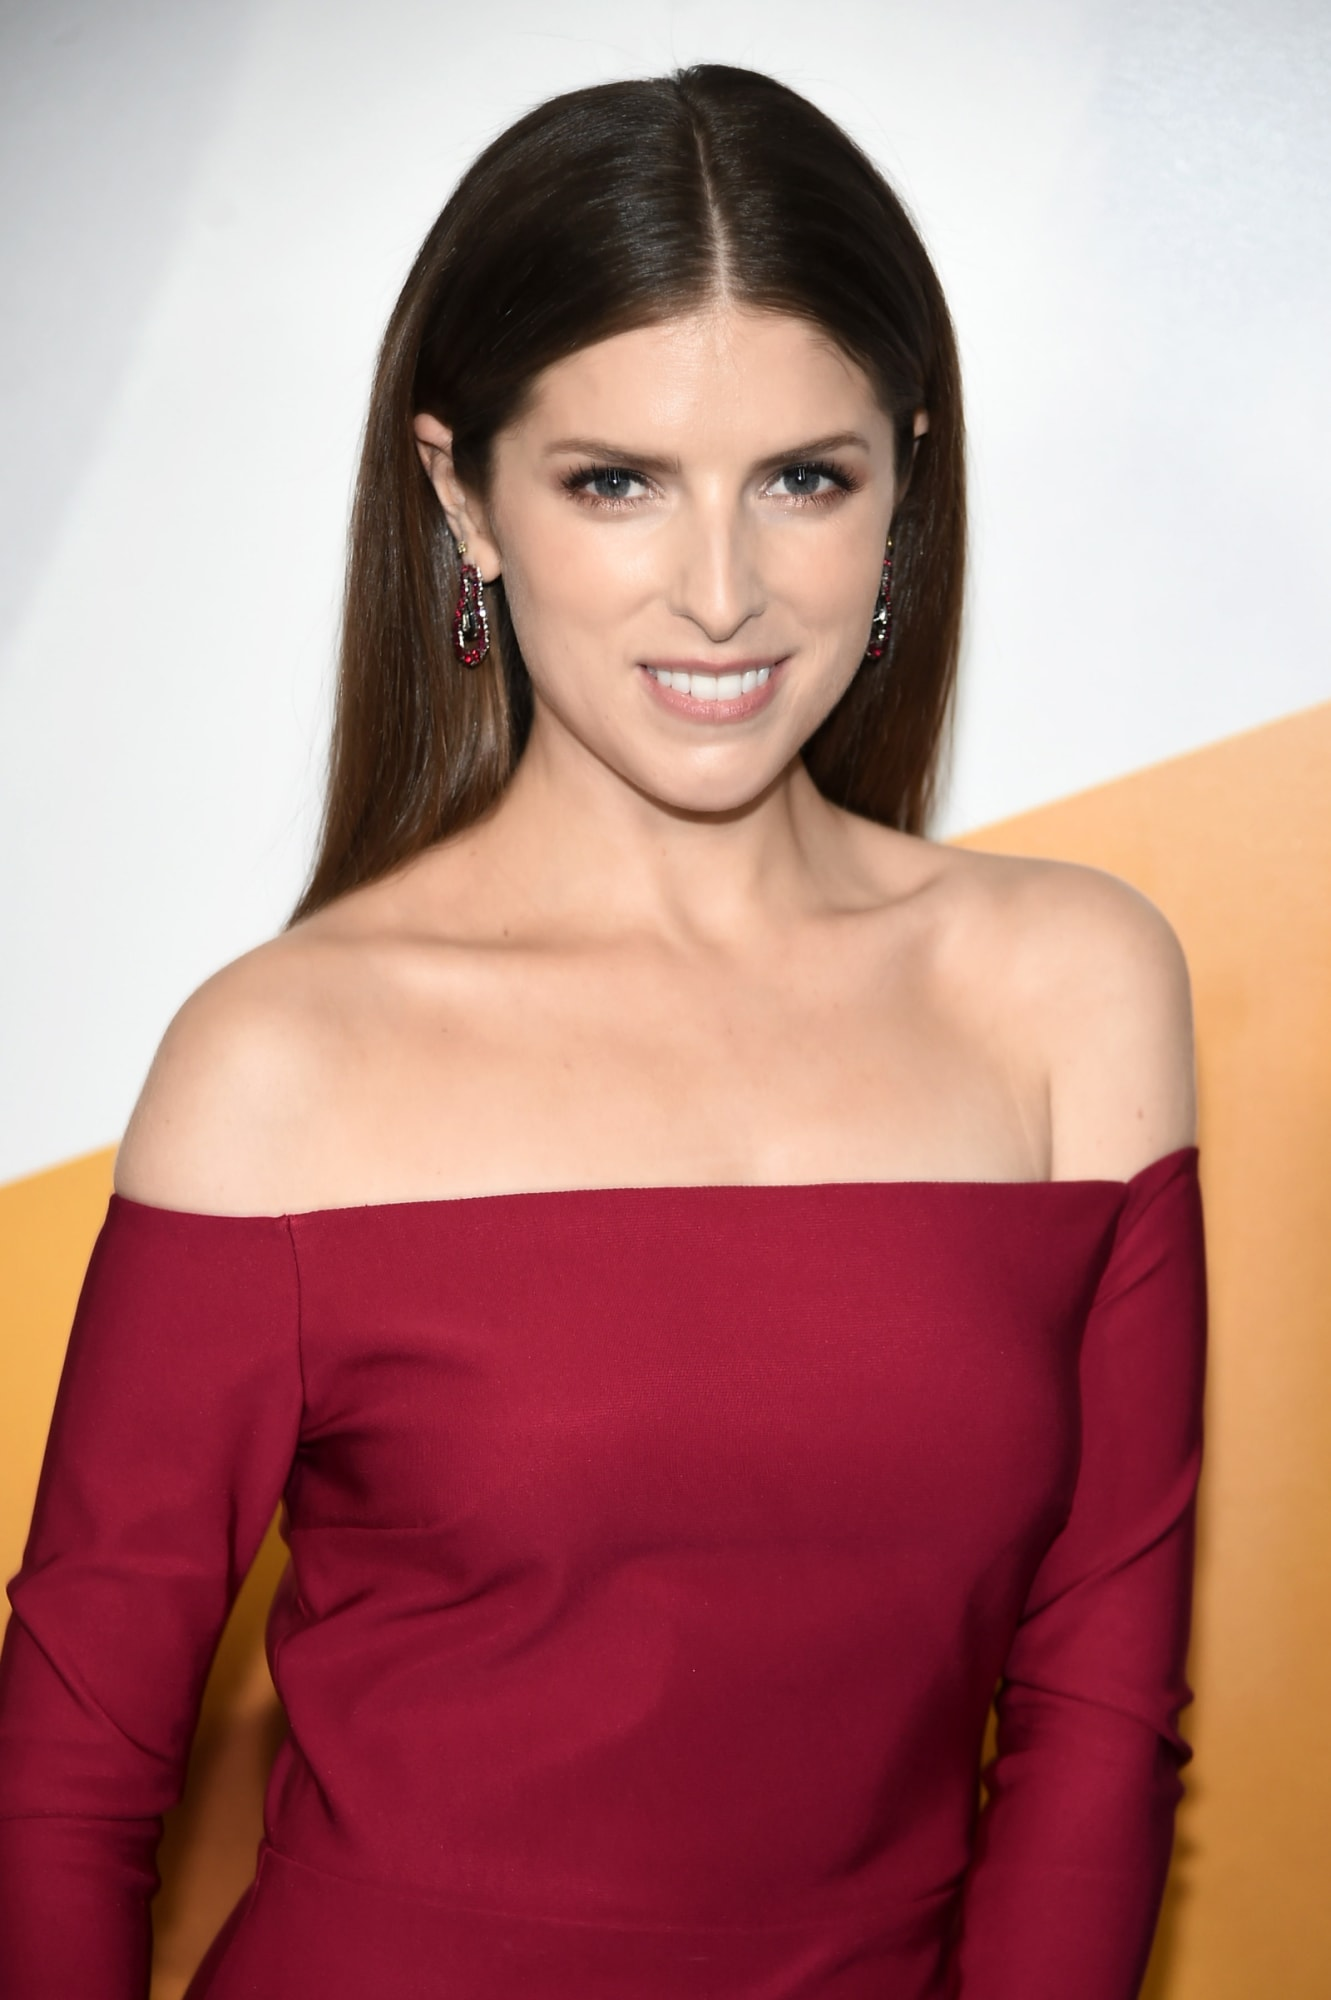 Anna Kendrick straddles bicycle in bikini before accident